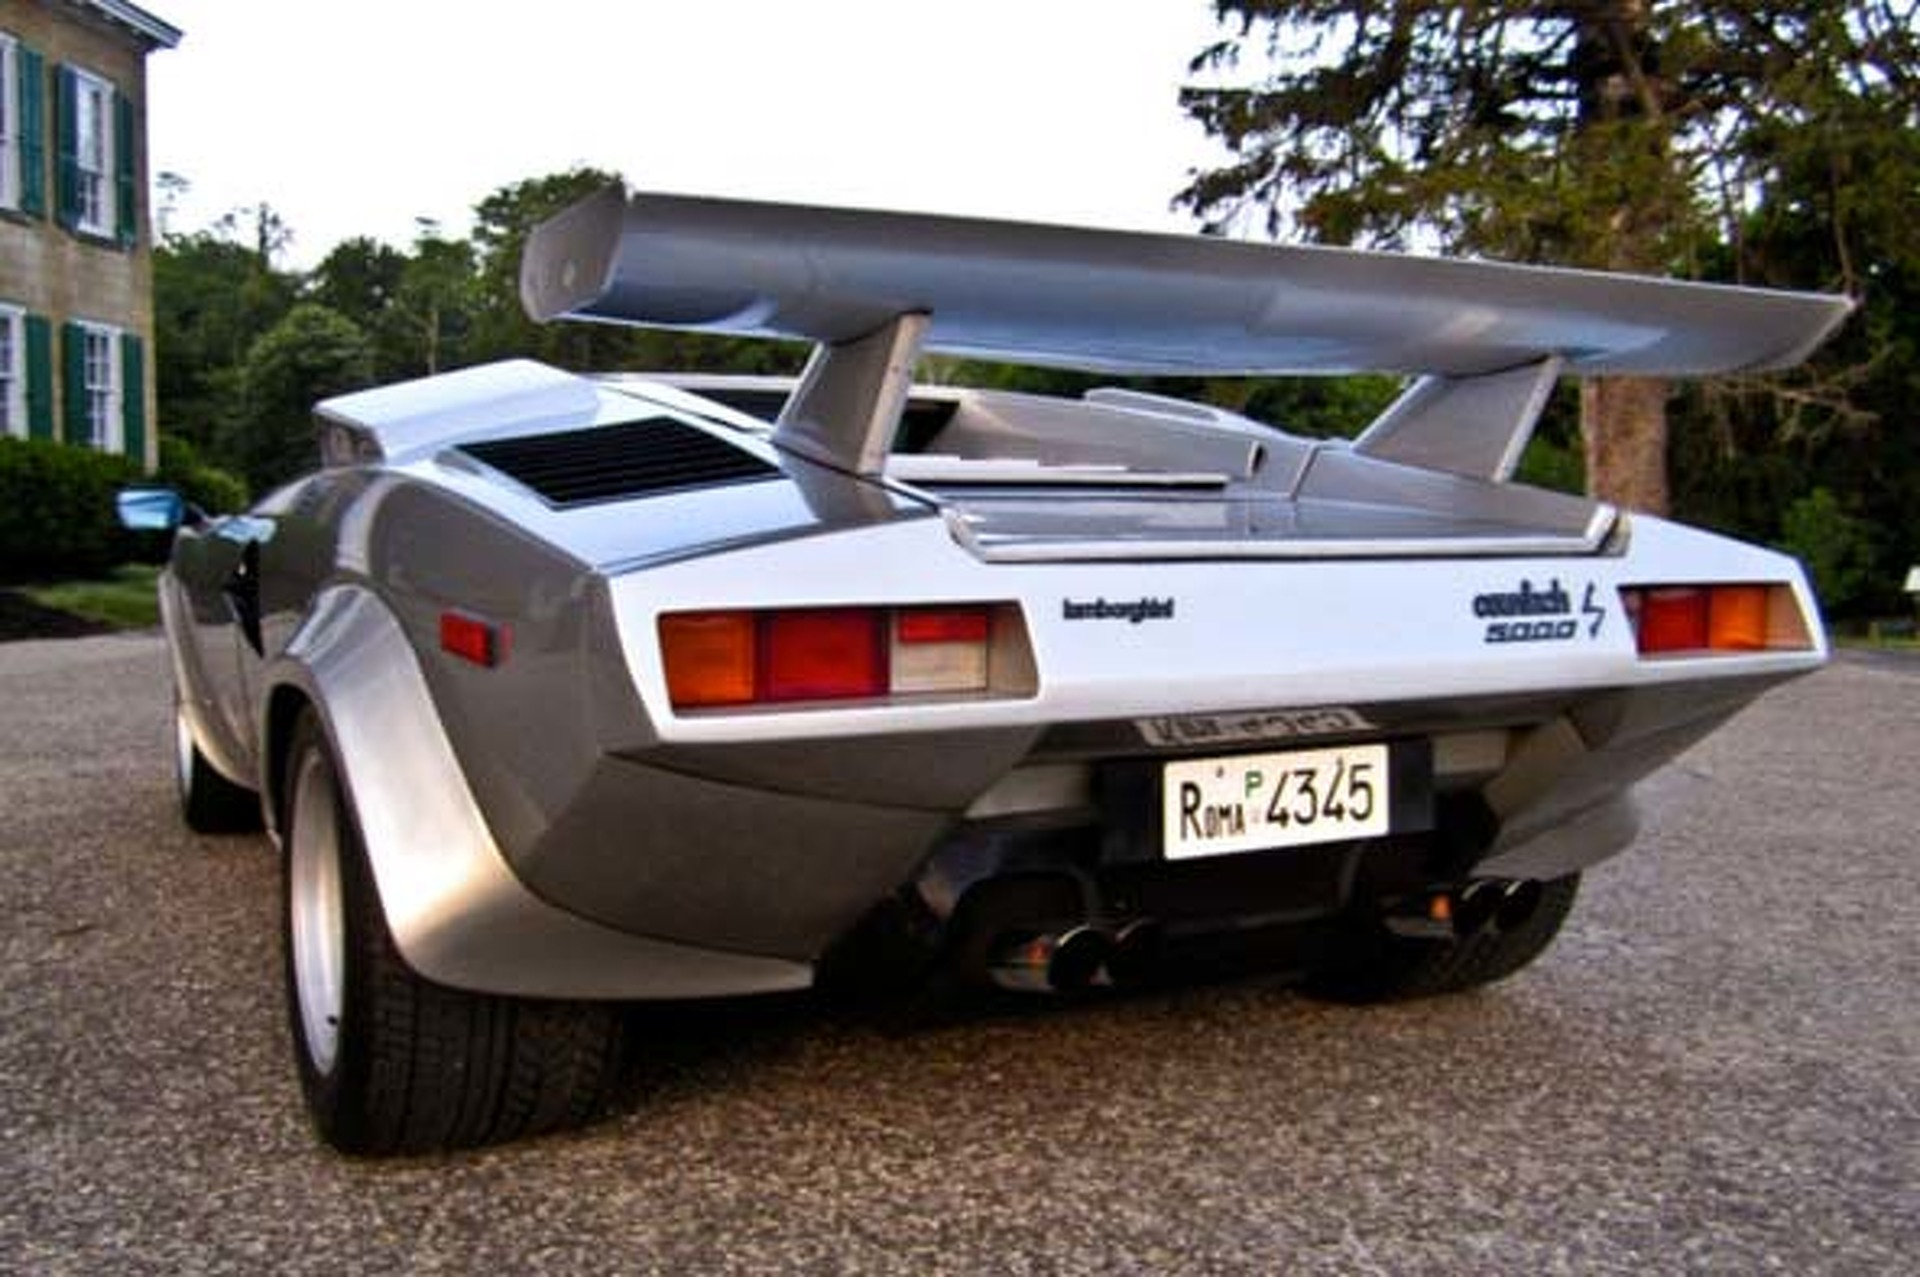 THIS 1982 Lamborghini Countach 5000s is on eBay right now